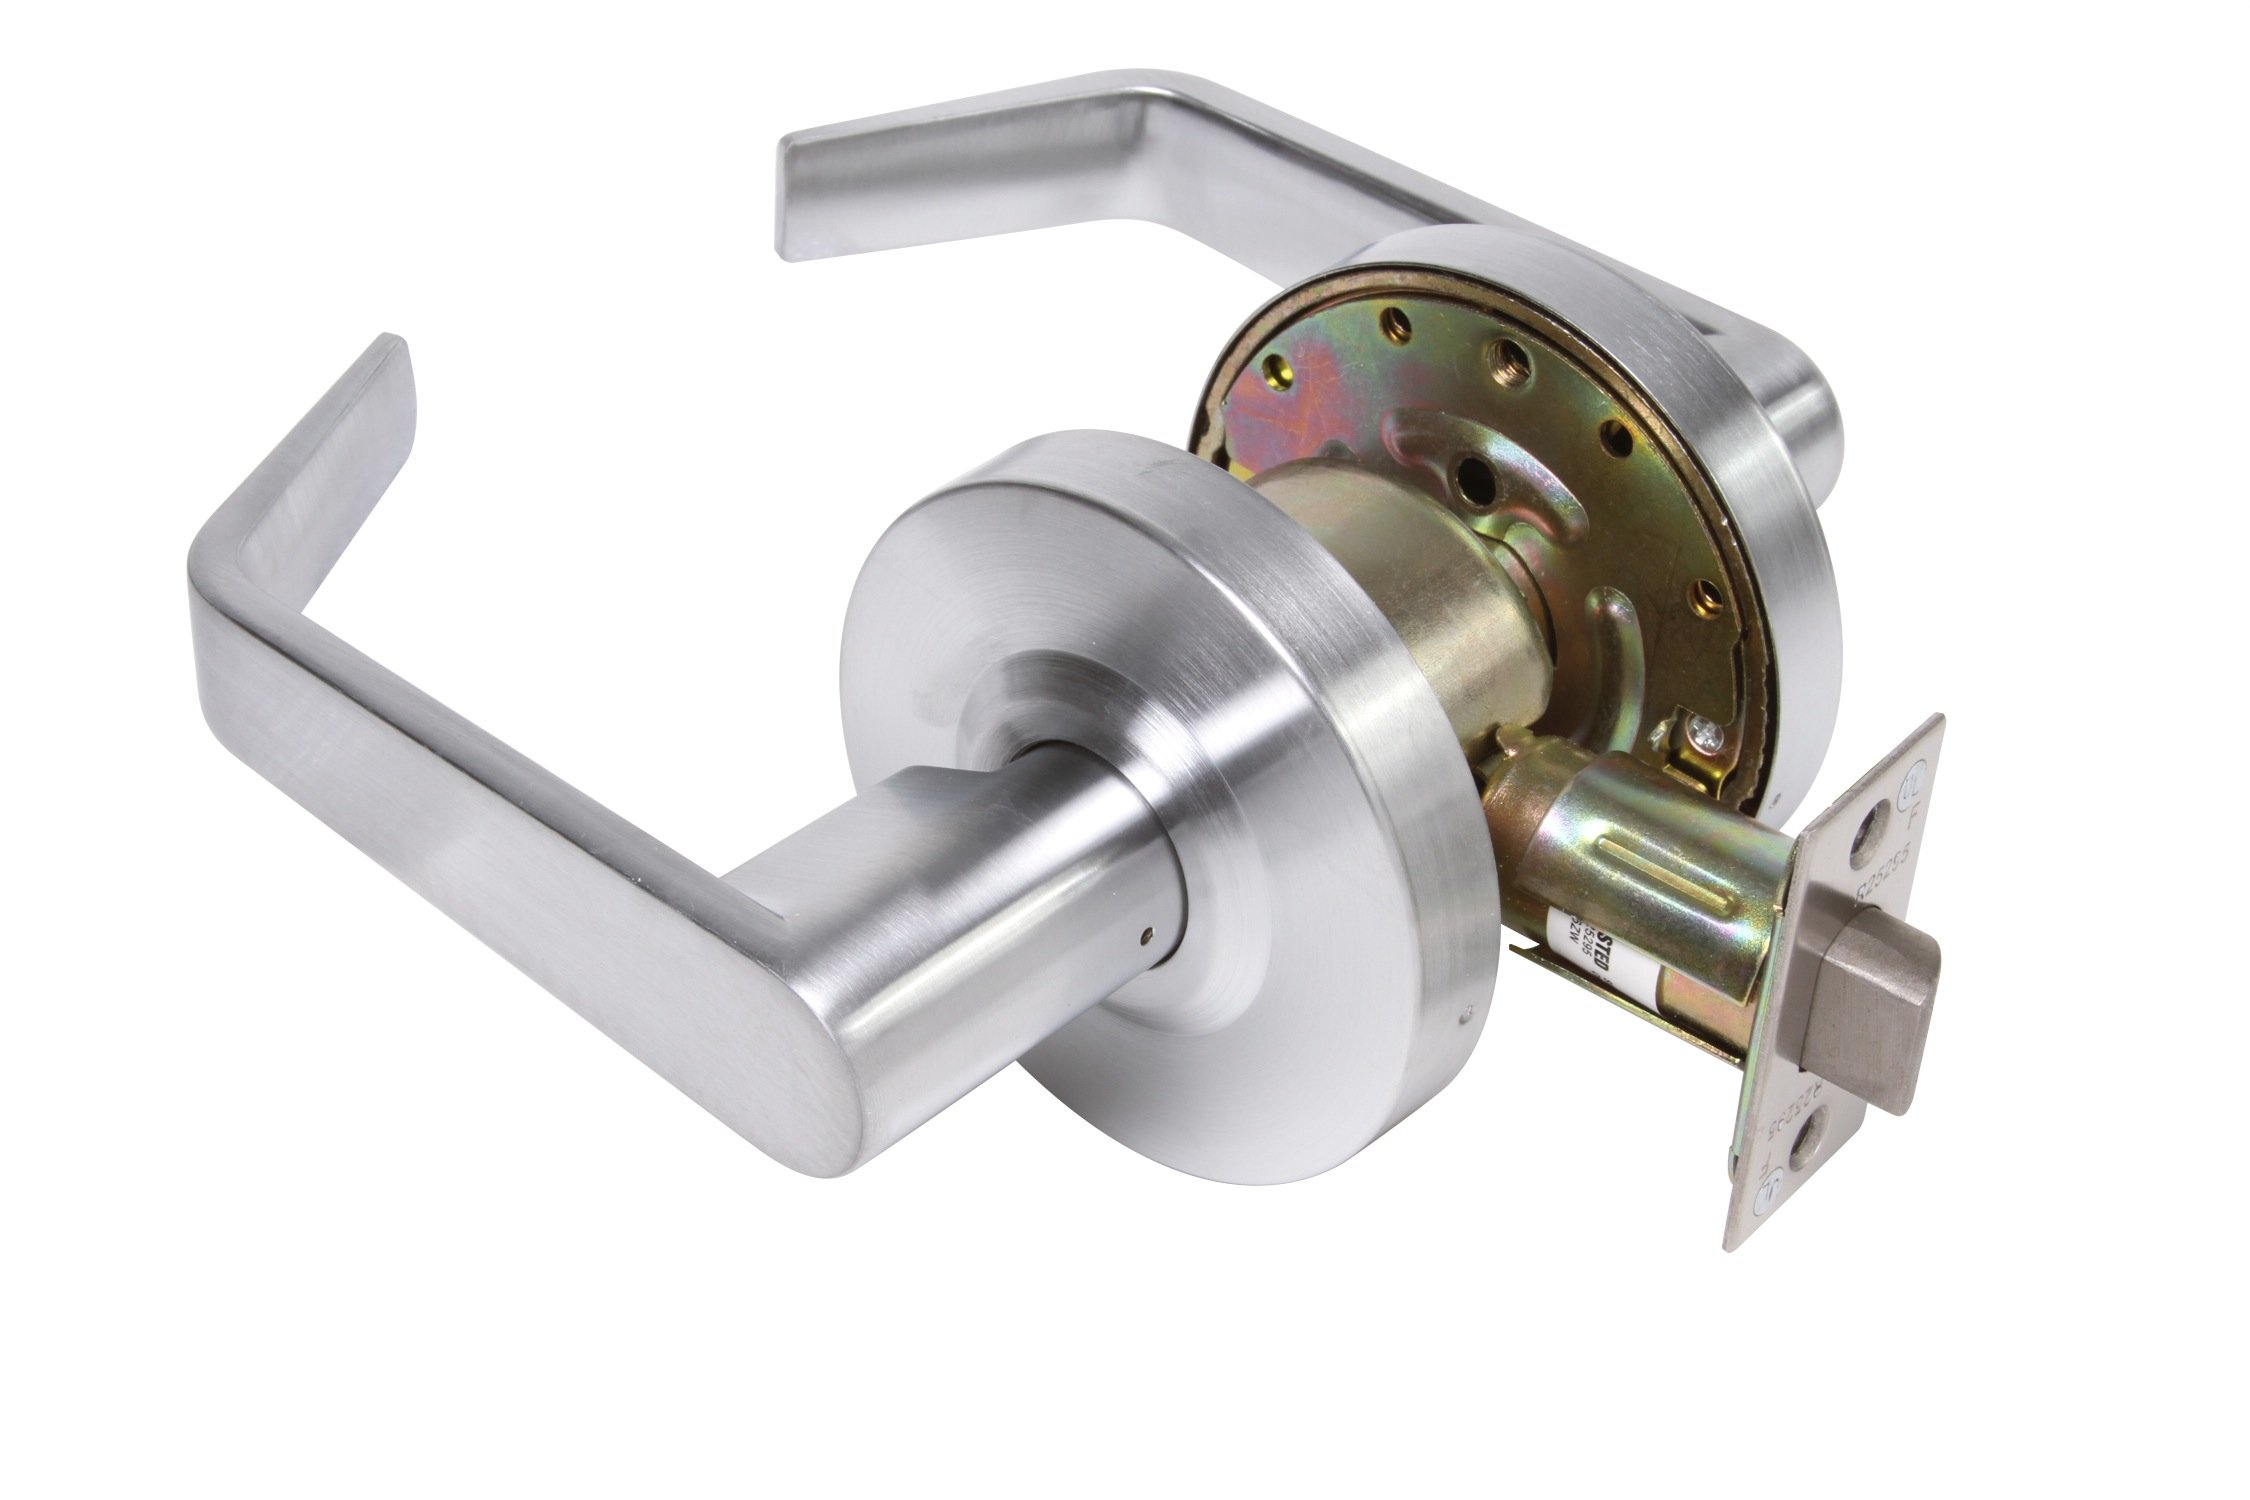 Legend 809076 Grade 2 Commercial Duty Passage Hall and Closet Leverset Lockset, US26D Satin Chrome Finish by Legend